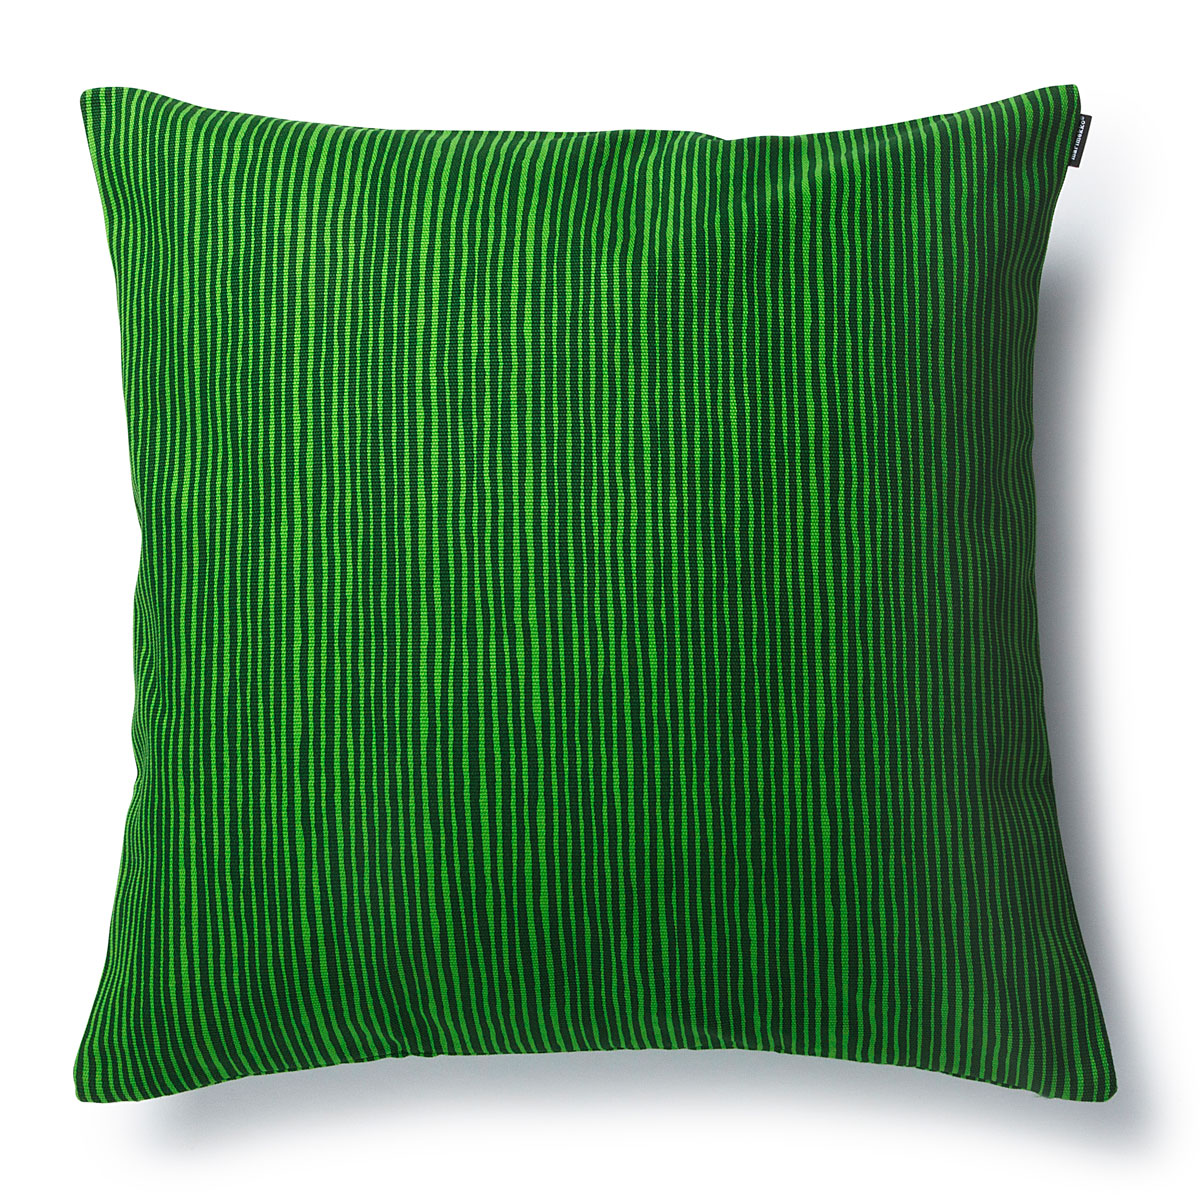 Marimekko Varvunraita Green Throw Pillow - Holiday Home Accents